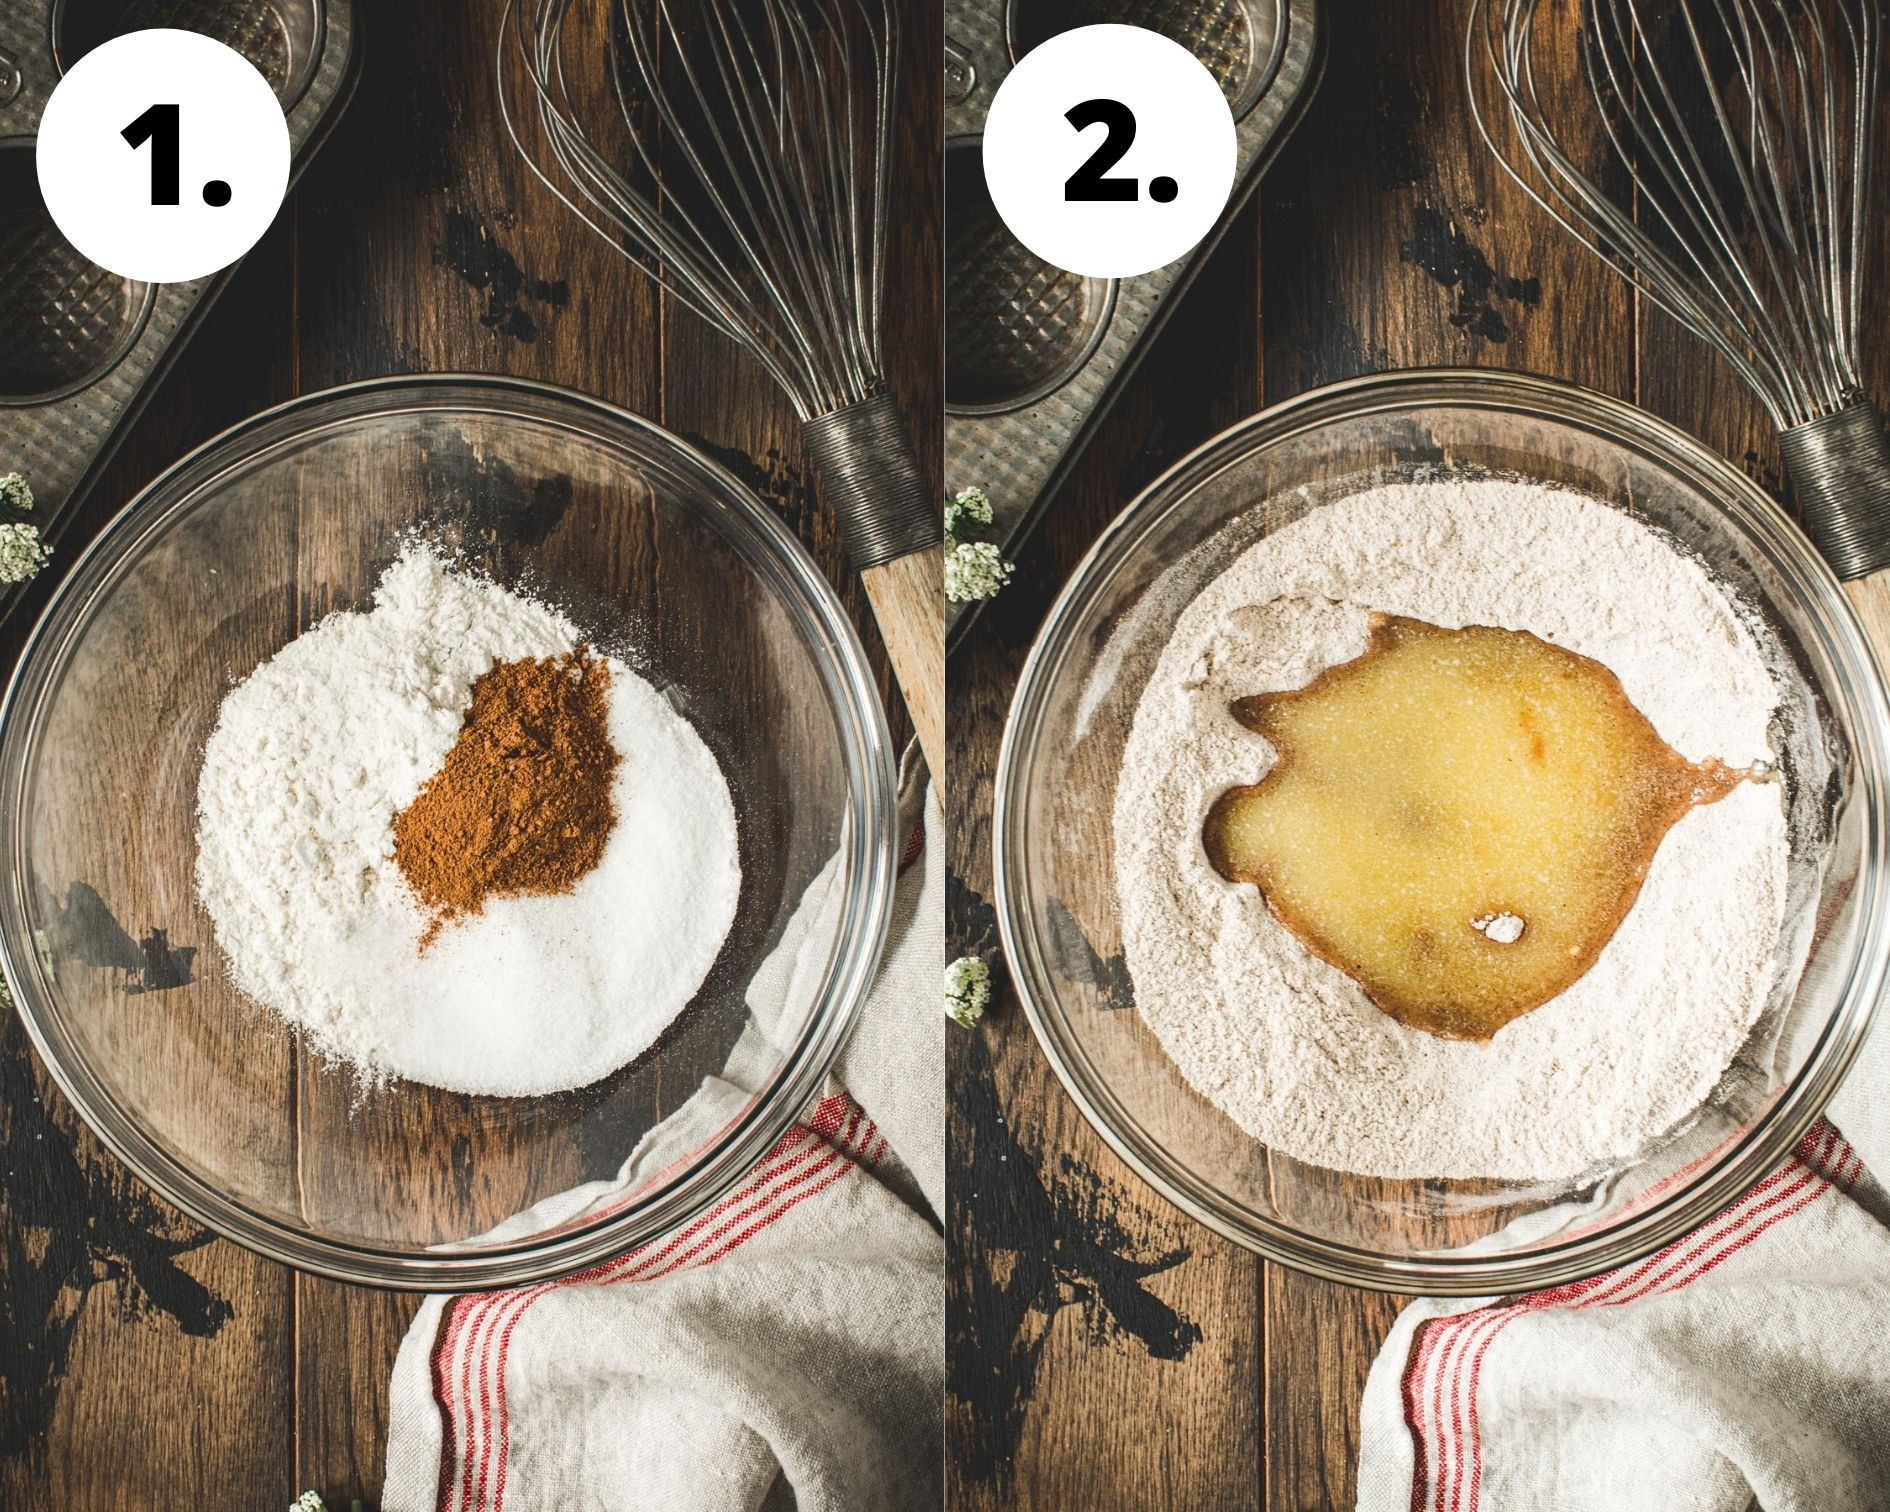 Apple crumble muffins process steps 1 and 2.